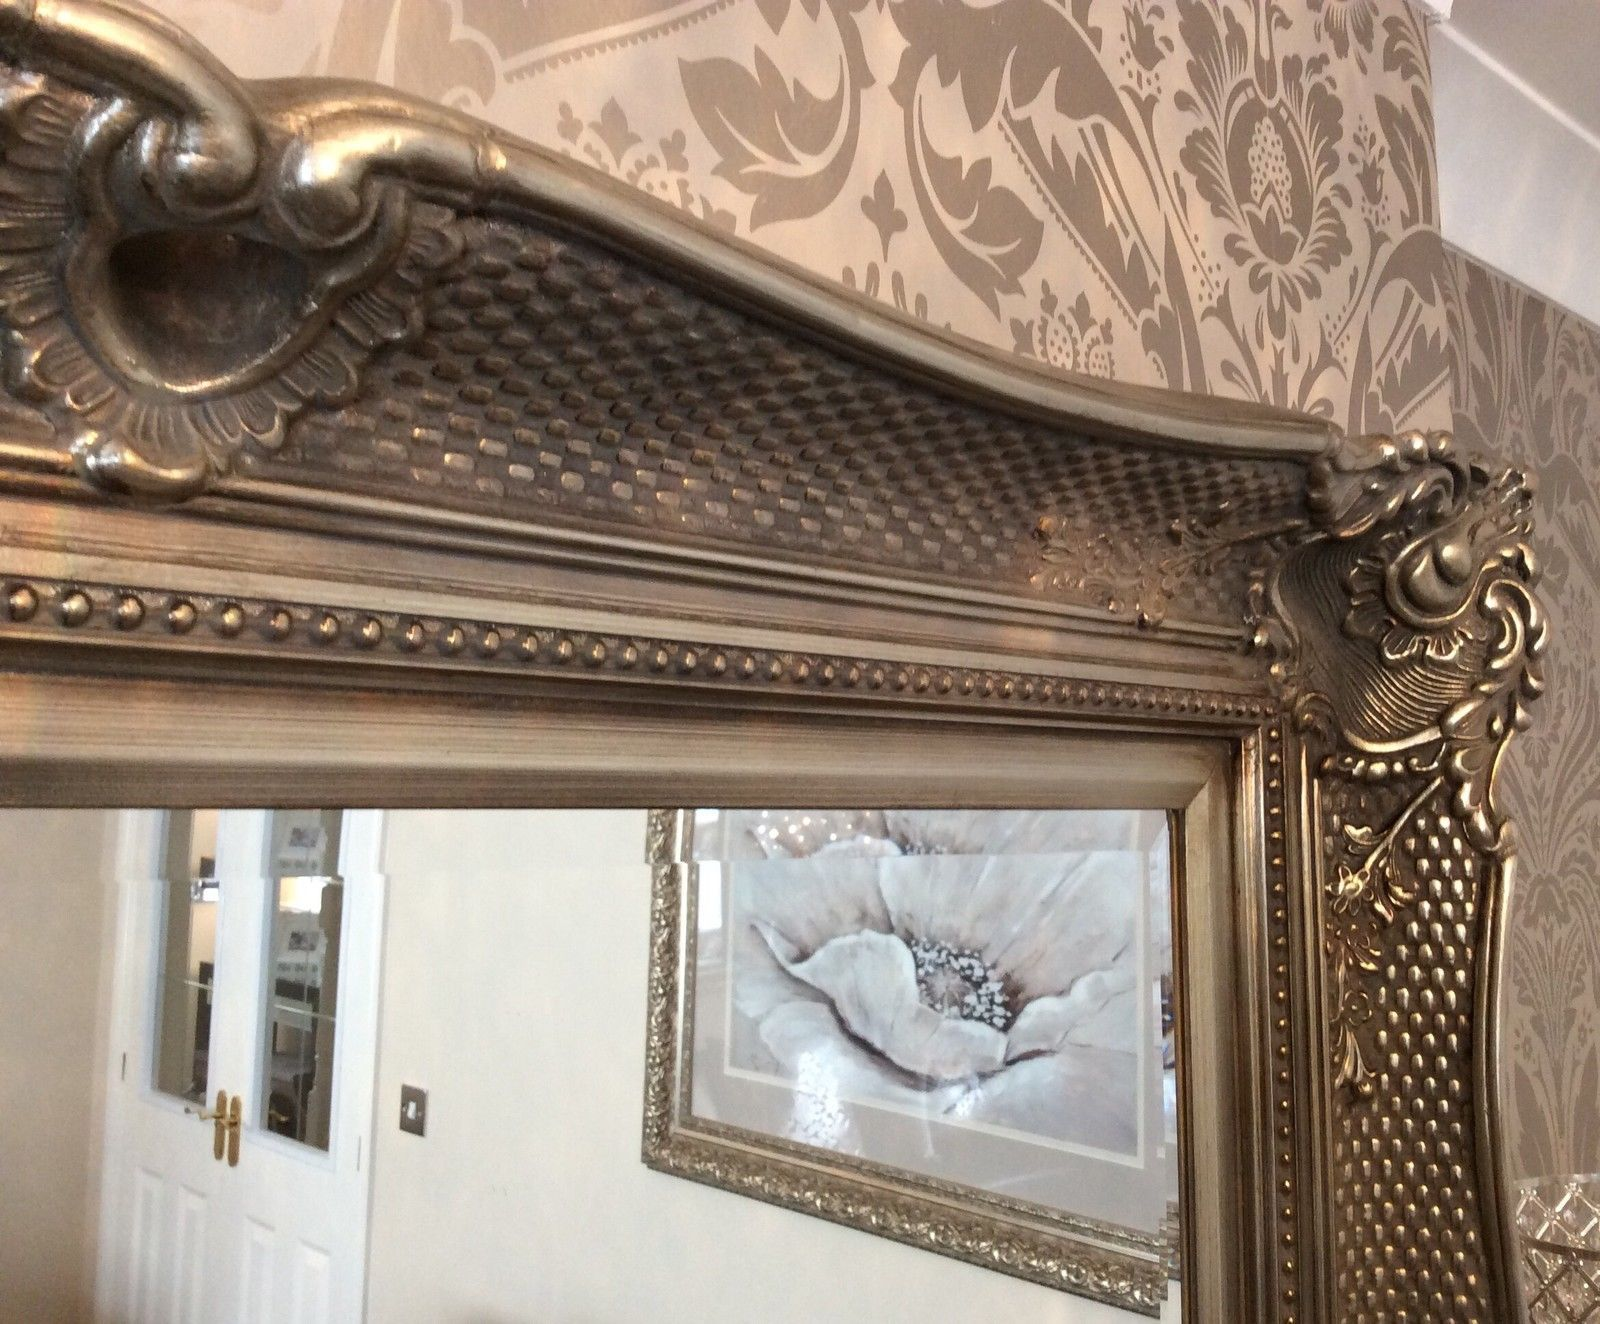 Large silver decorative mirror save s insured in transit for Large silver decorative mirrors